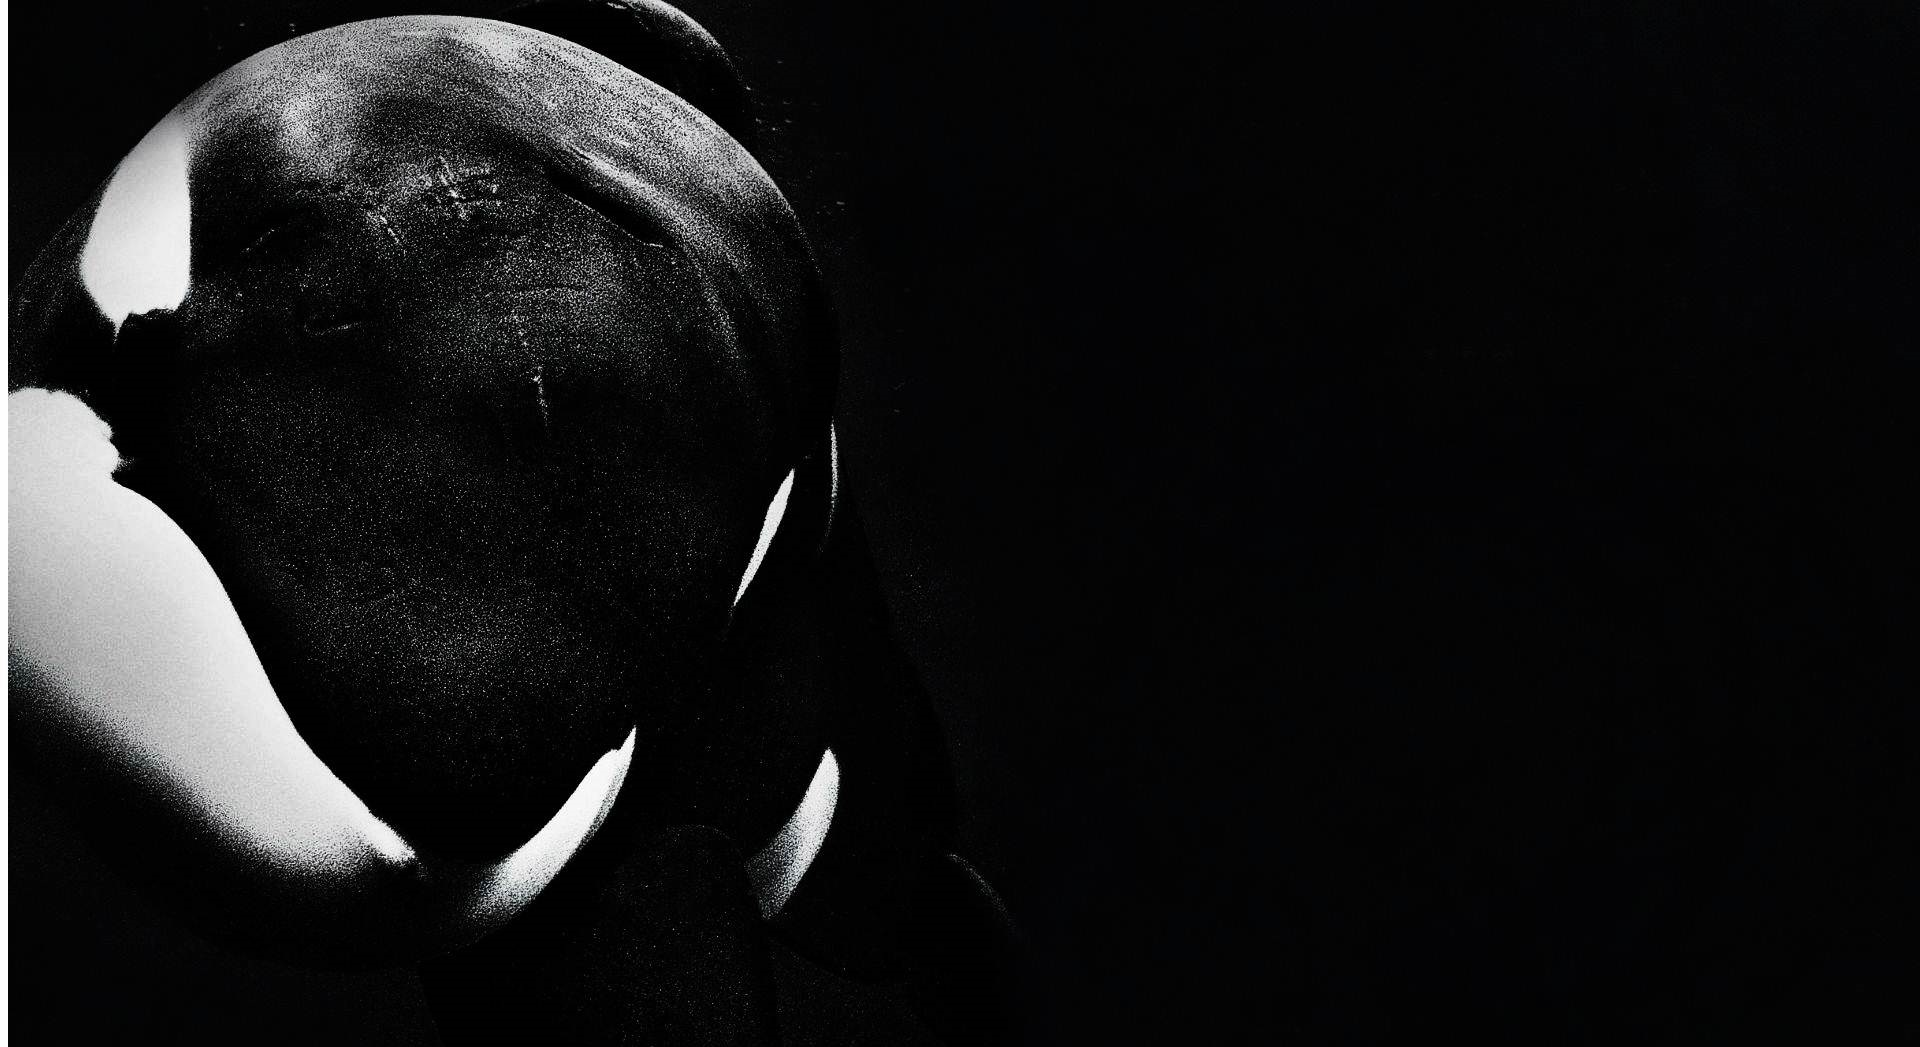 dolphin hd wallpapers for desktop